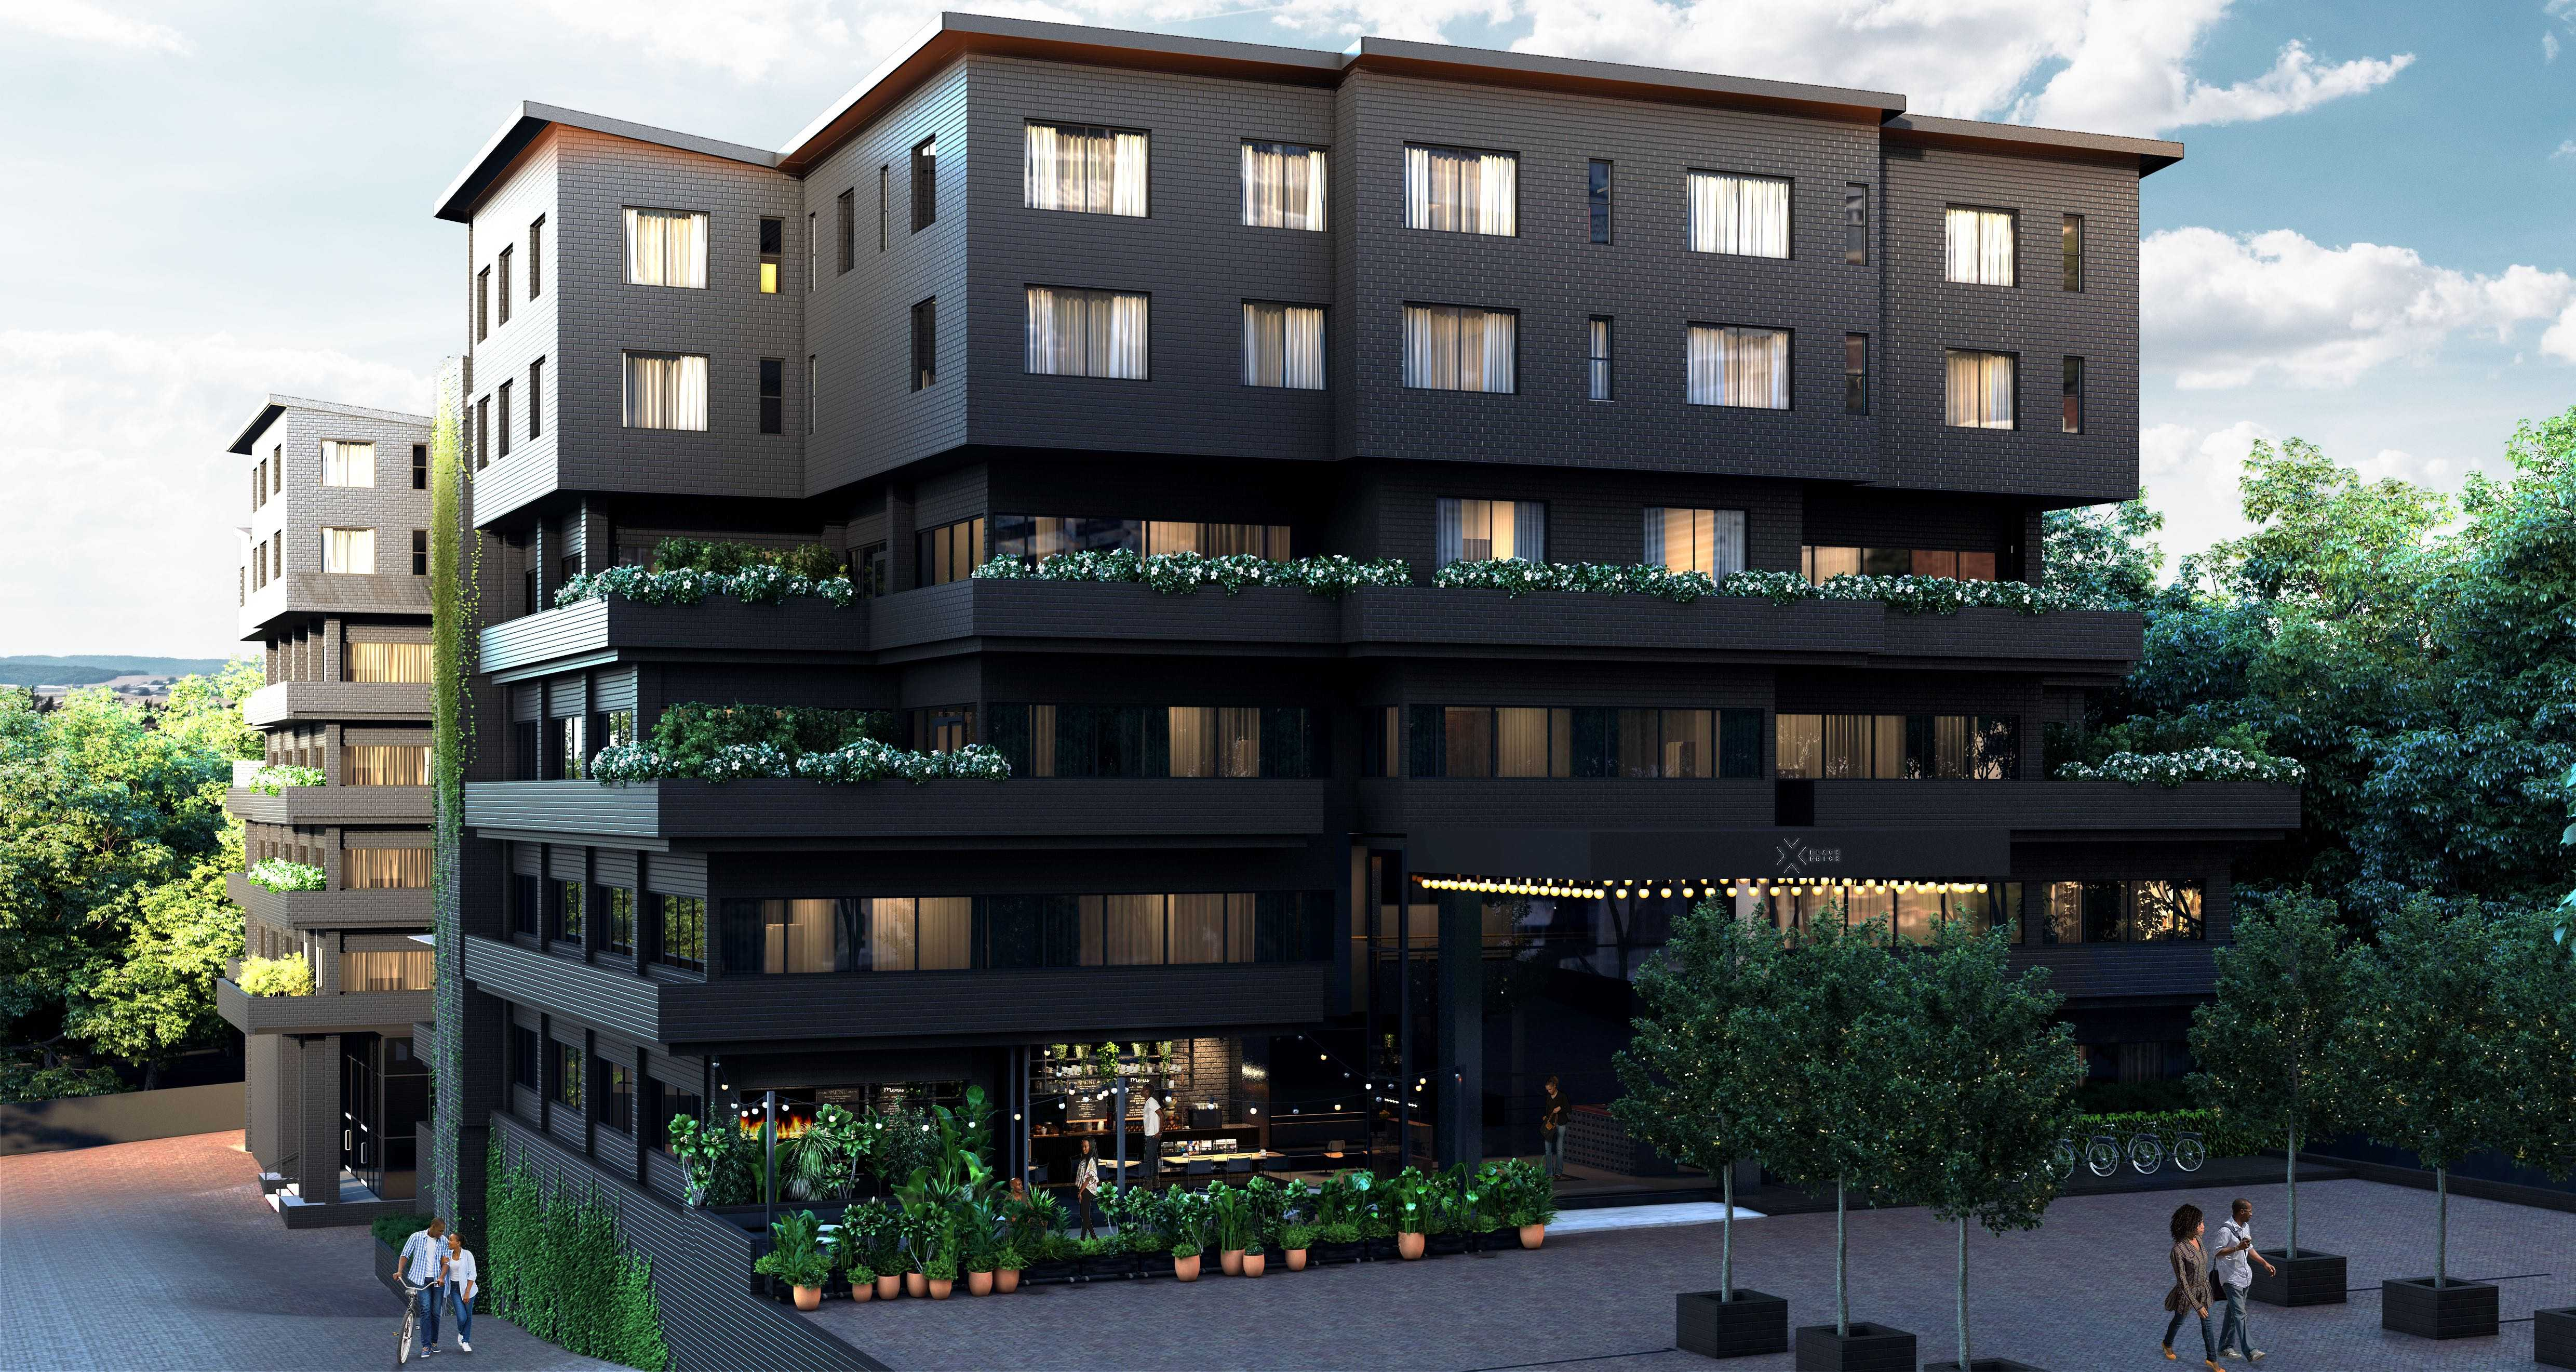 BlackBrick launches the first residential conversion in the Sandton CBD